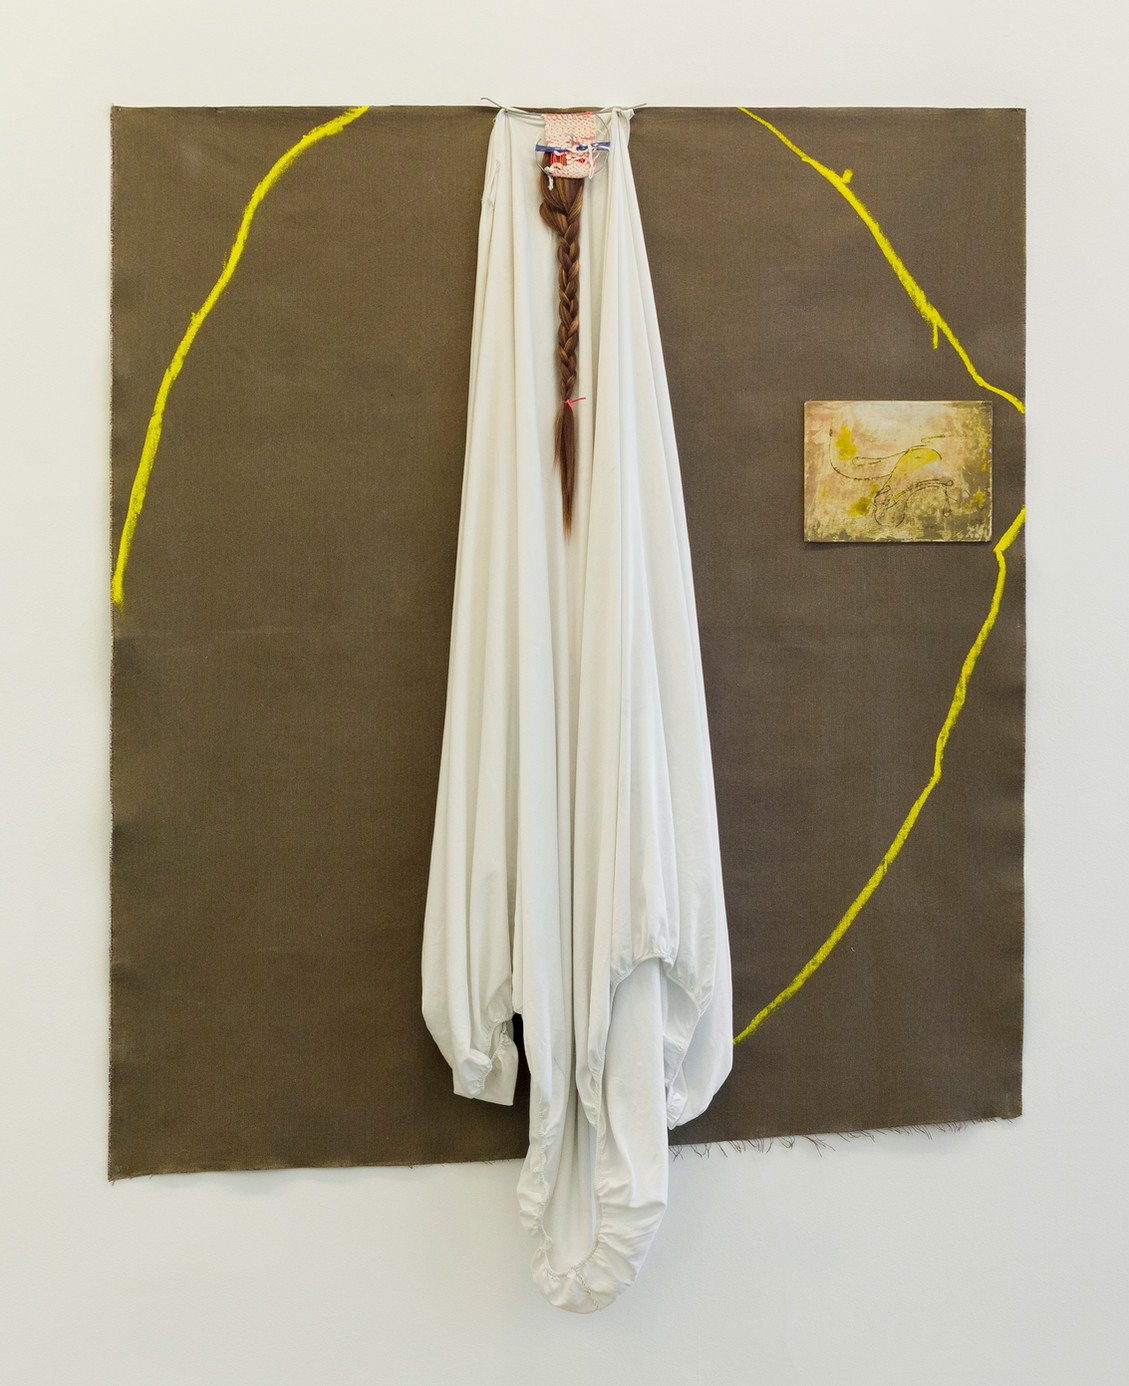 Veil, 2017 | Bedsheet, oil, tapestry and braids on canvas | 198 x 149 x 20 cm